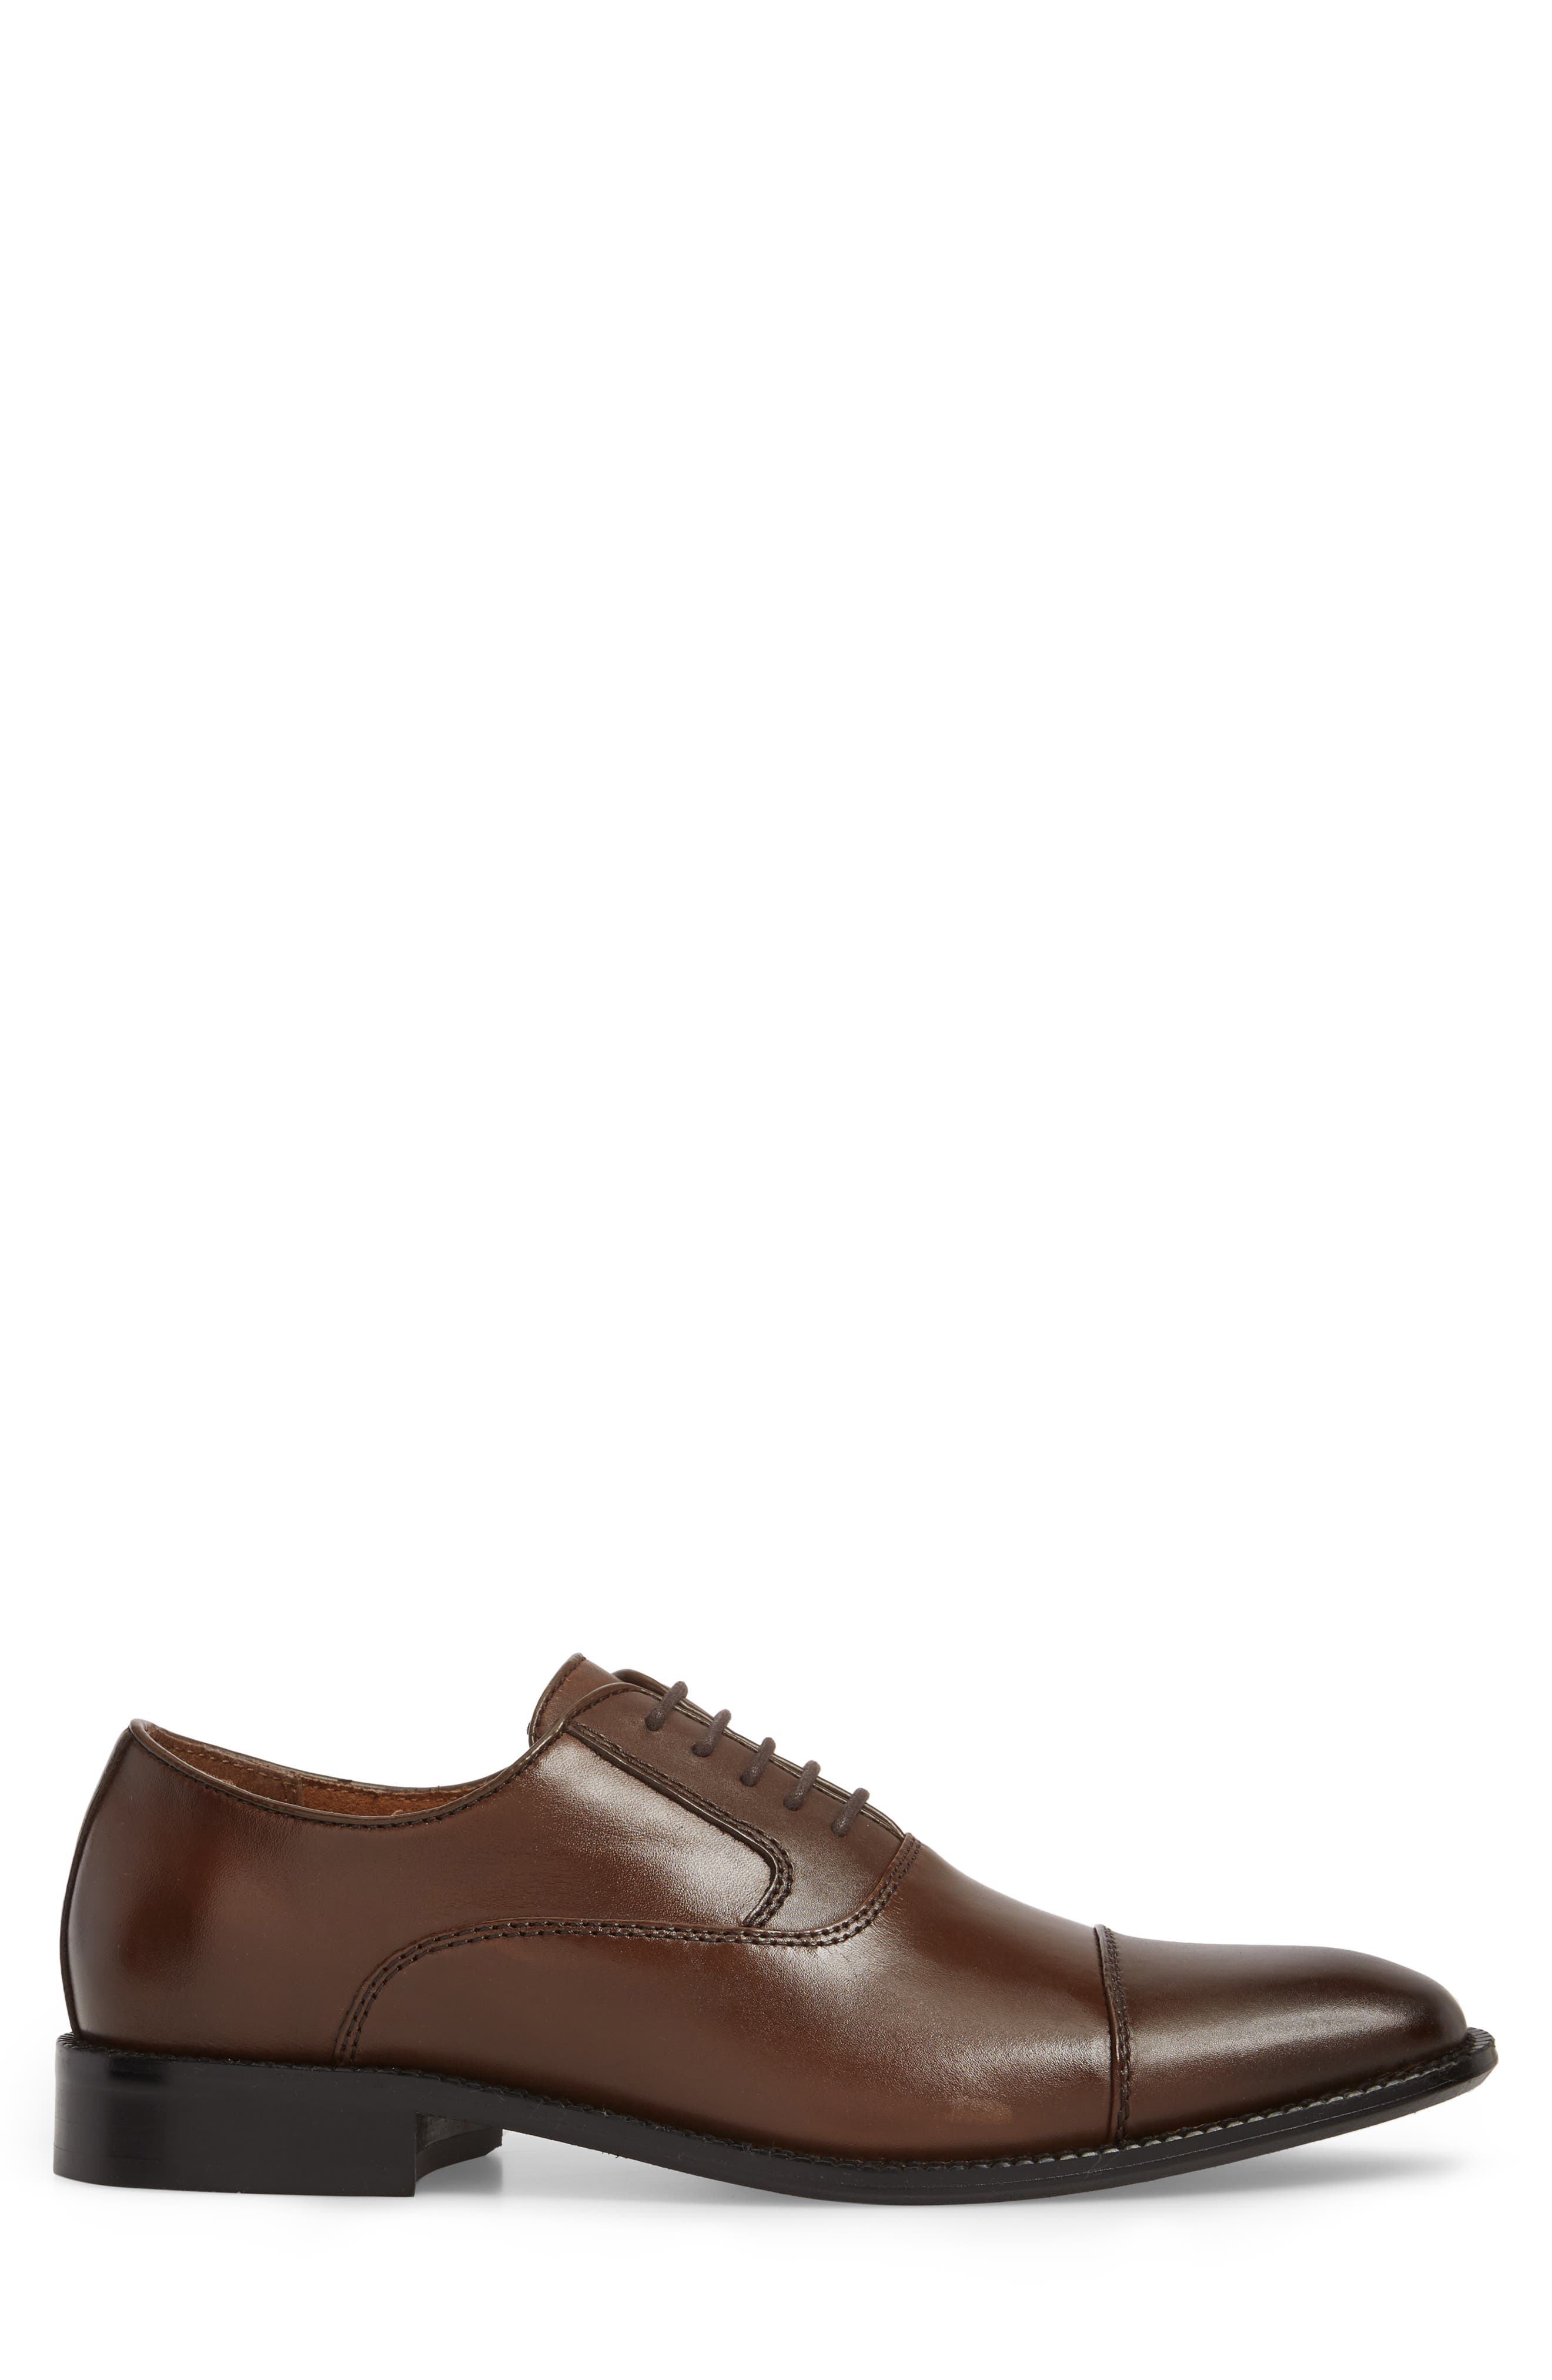 Dice Cap Toe Oxford,                             Alternate thumbnail 3, color,                             Brown Leather